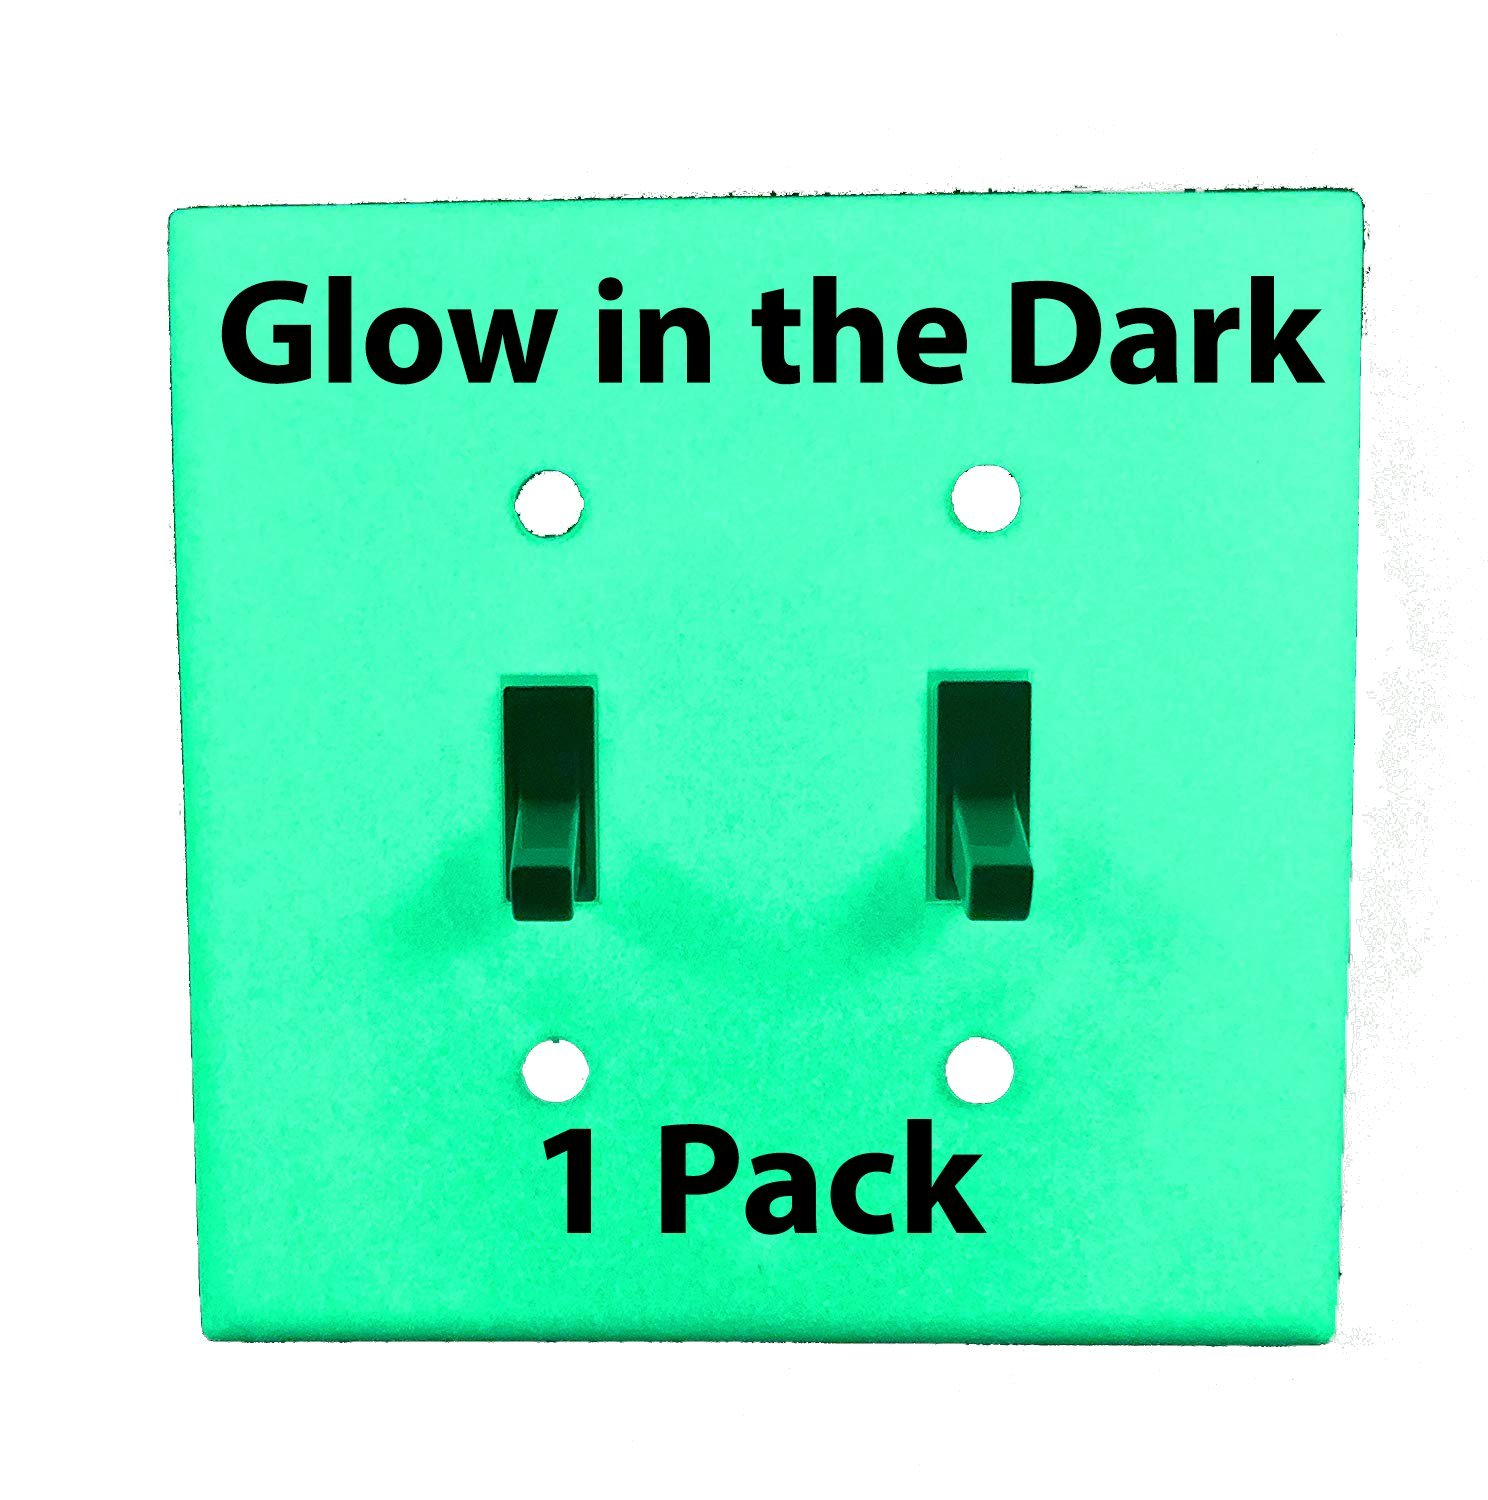 Glow in the Dark Safety 2-Gang Wall Cover Plate - White Plastic - Standard Size for Double Toggle Light Switch (Single Pack)